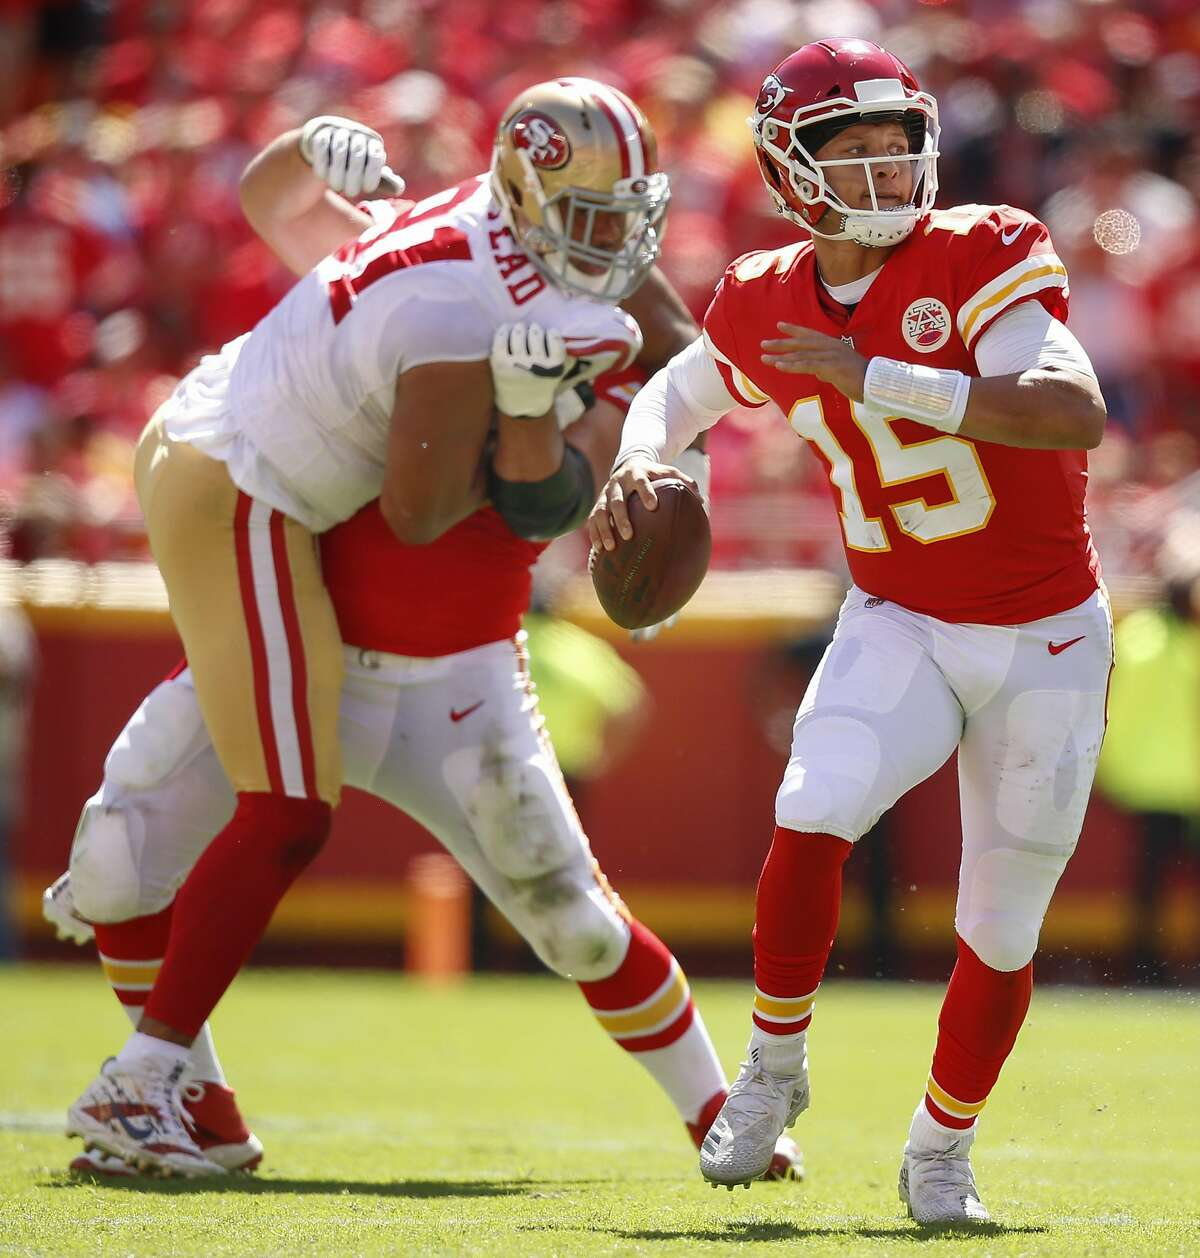 It's Mahomes' Chiefs versus Garoppolo's 49er's in the highly anticipated Super Bowl LIV on Sunday. Find out where you can watch the big game.